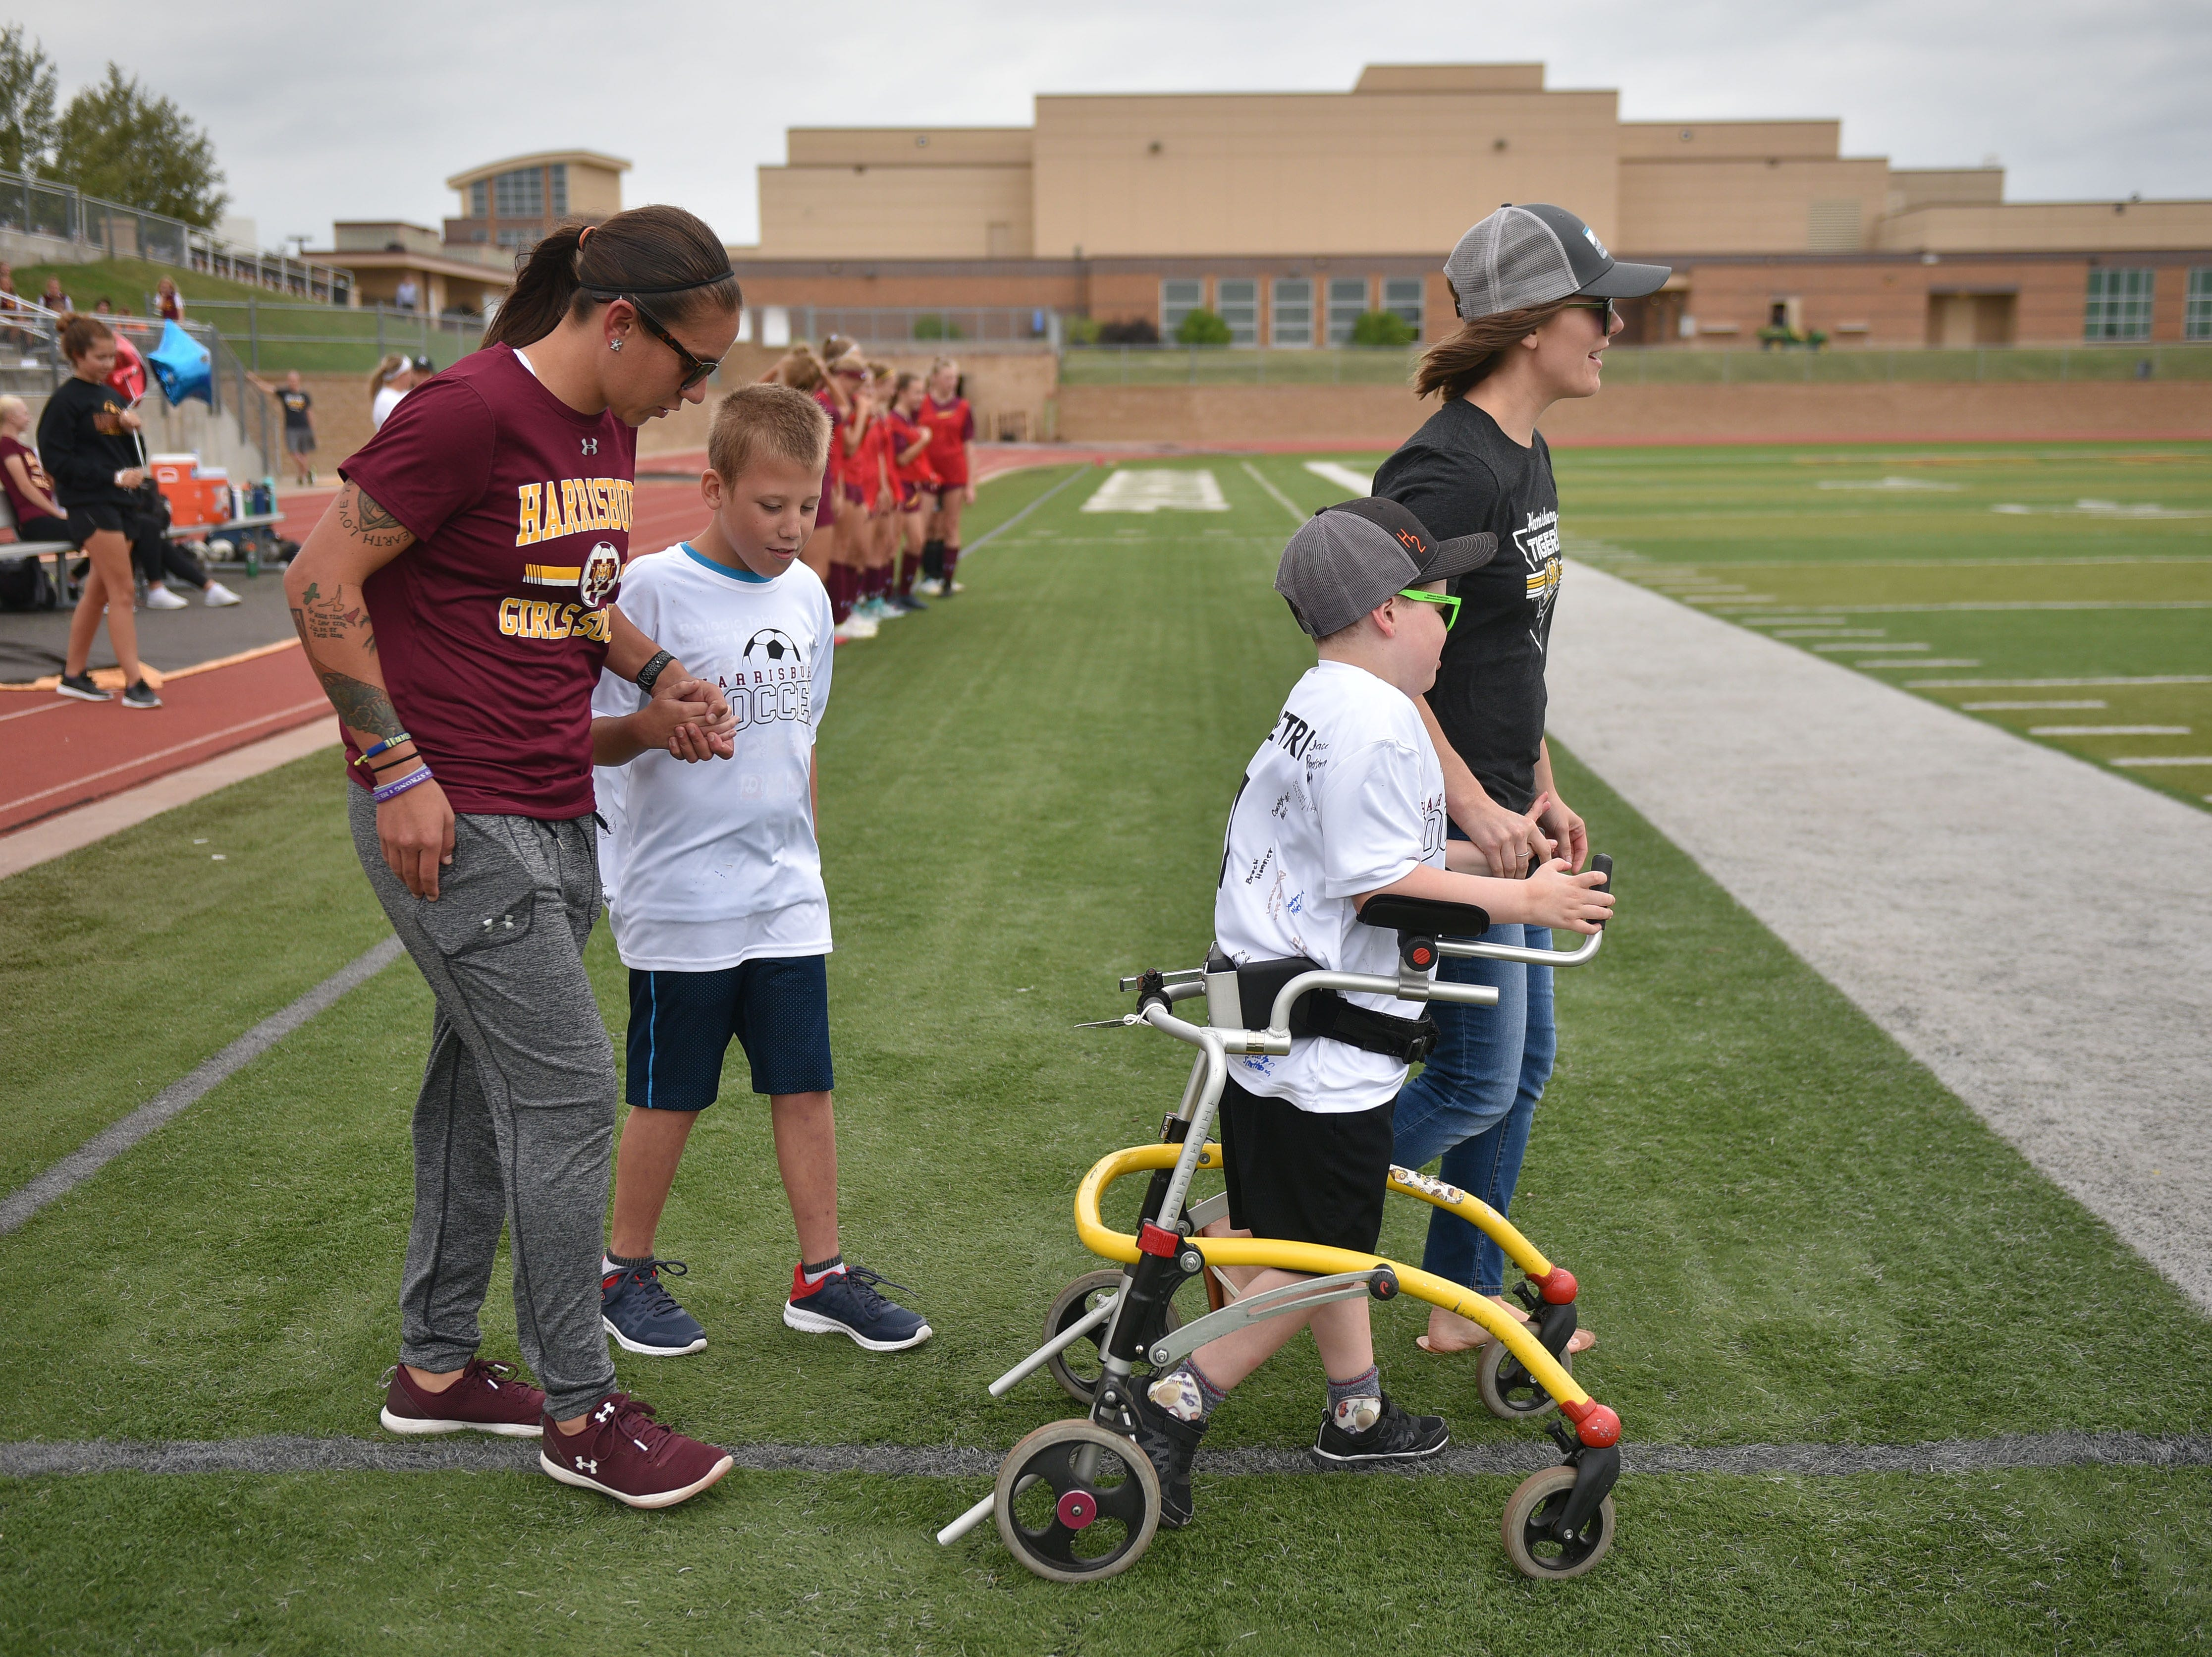 Kate Hamilton walks onto the field with her son Grant and Harrisburg head coach Desiree Parmenter walks out with Corey Surikov before the Harrisburg vs Hurron game Thursday, Sept. 13, at Harrisburg. Grant Hamilton and Corey Surikov were named Players of the Game.